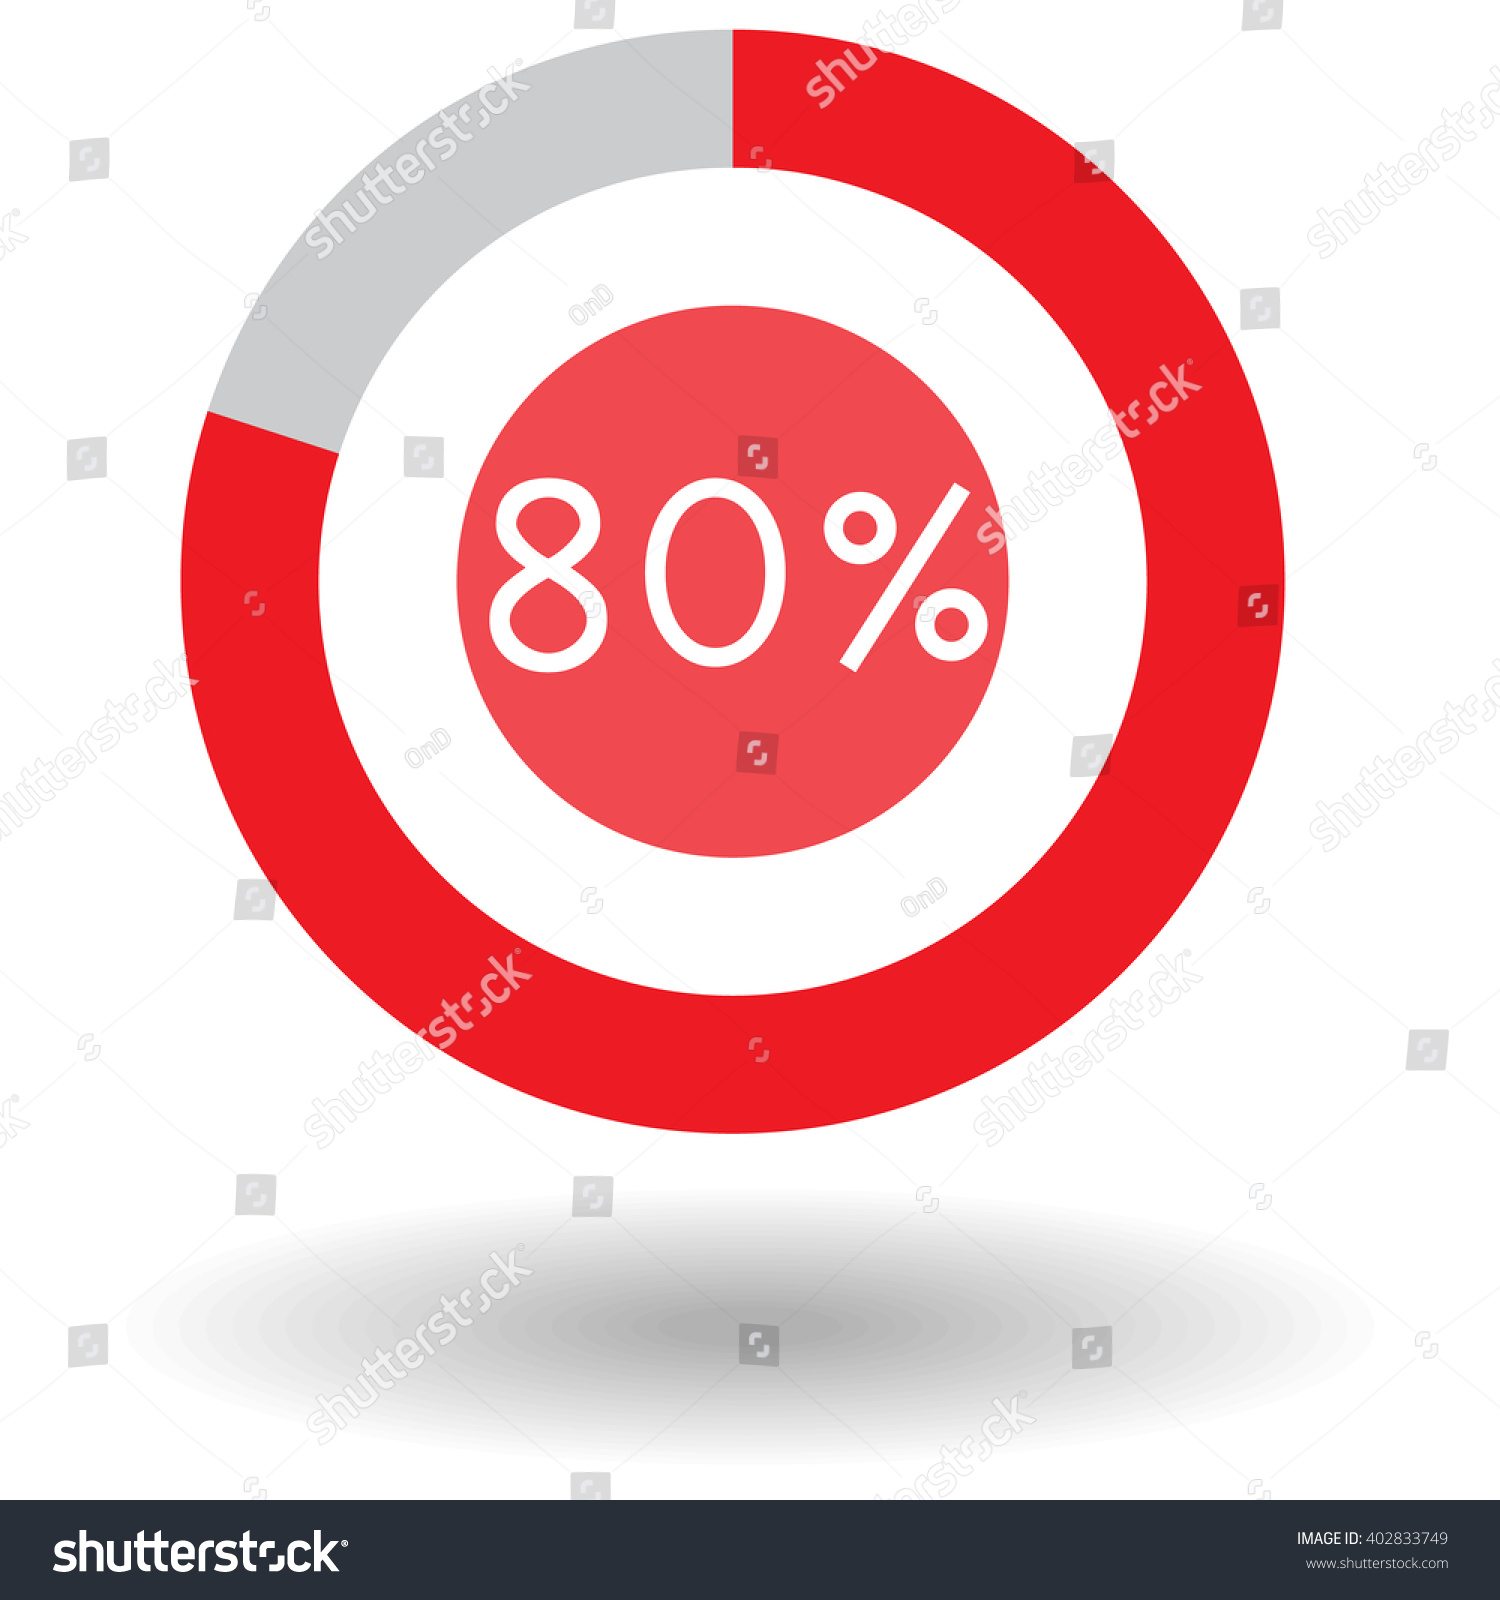 Icon business colorful pie chart circle stock vector 402833749 icon business colorful pie chart circle graph 80 red vector illustration nvjuhfo Choice Image